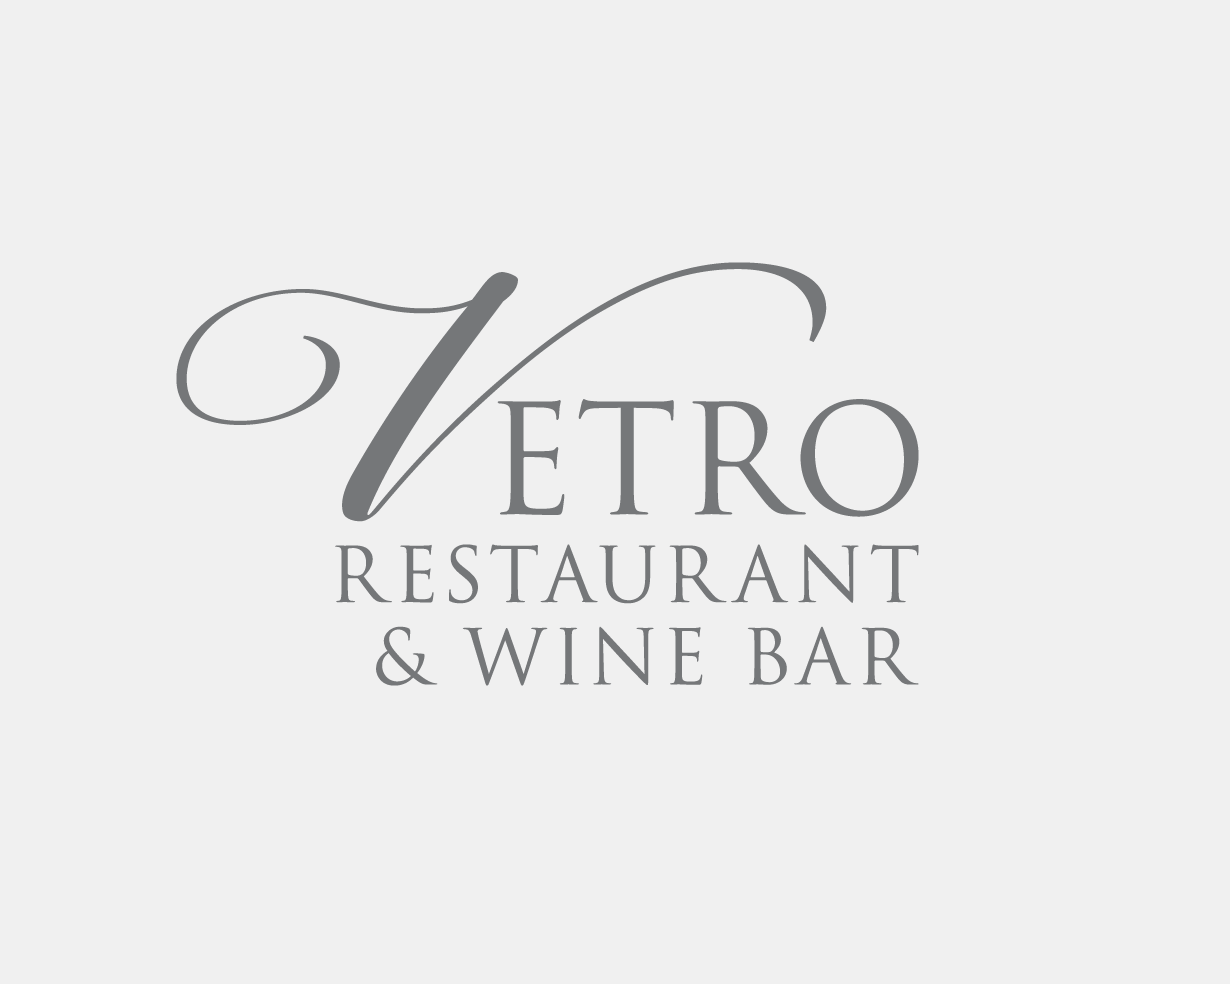 Breen_Electrical_Clients_Vetro